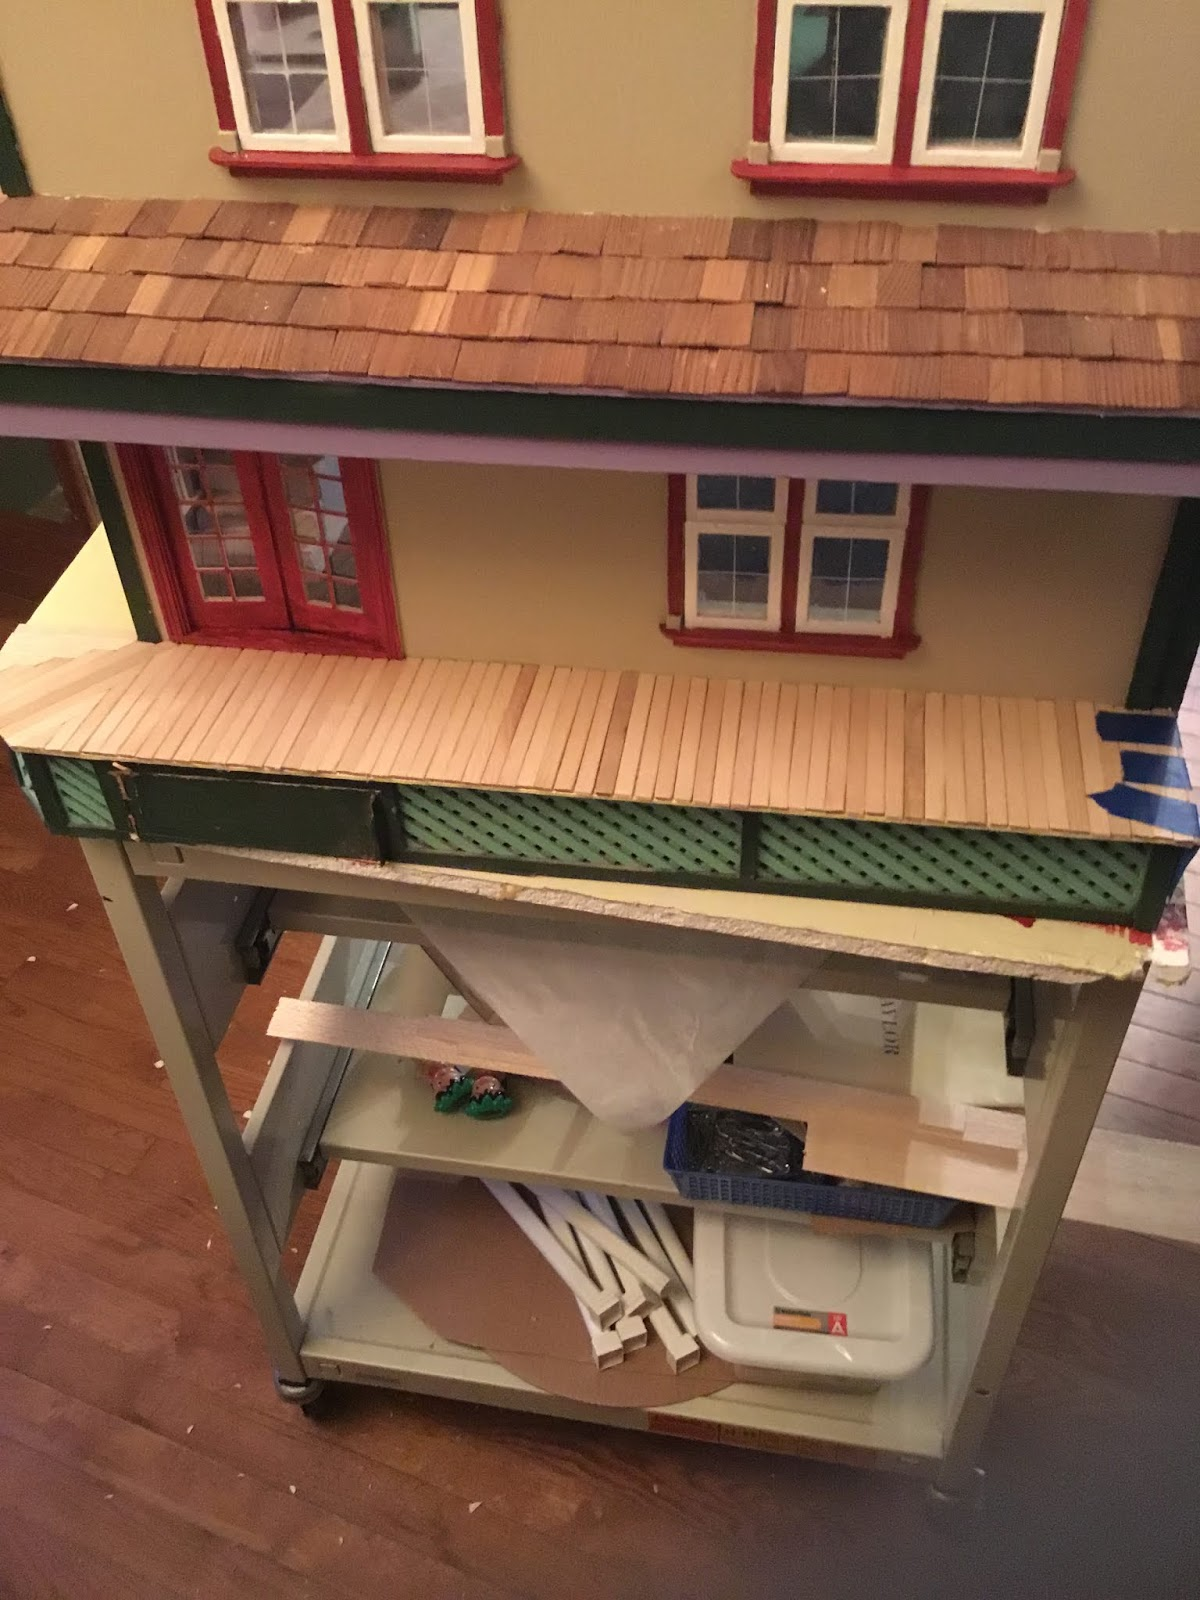 That S So Gay Putting A Wooden Floor On A Porch For A Dollhouse